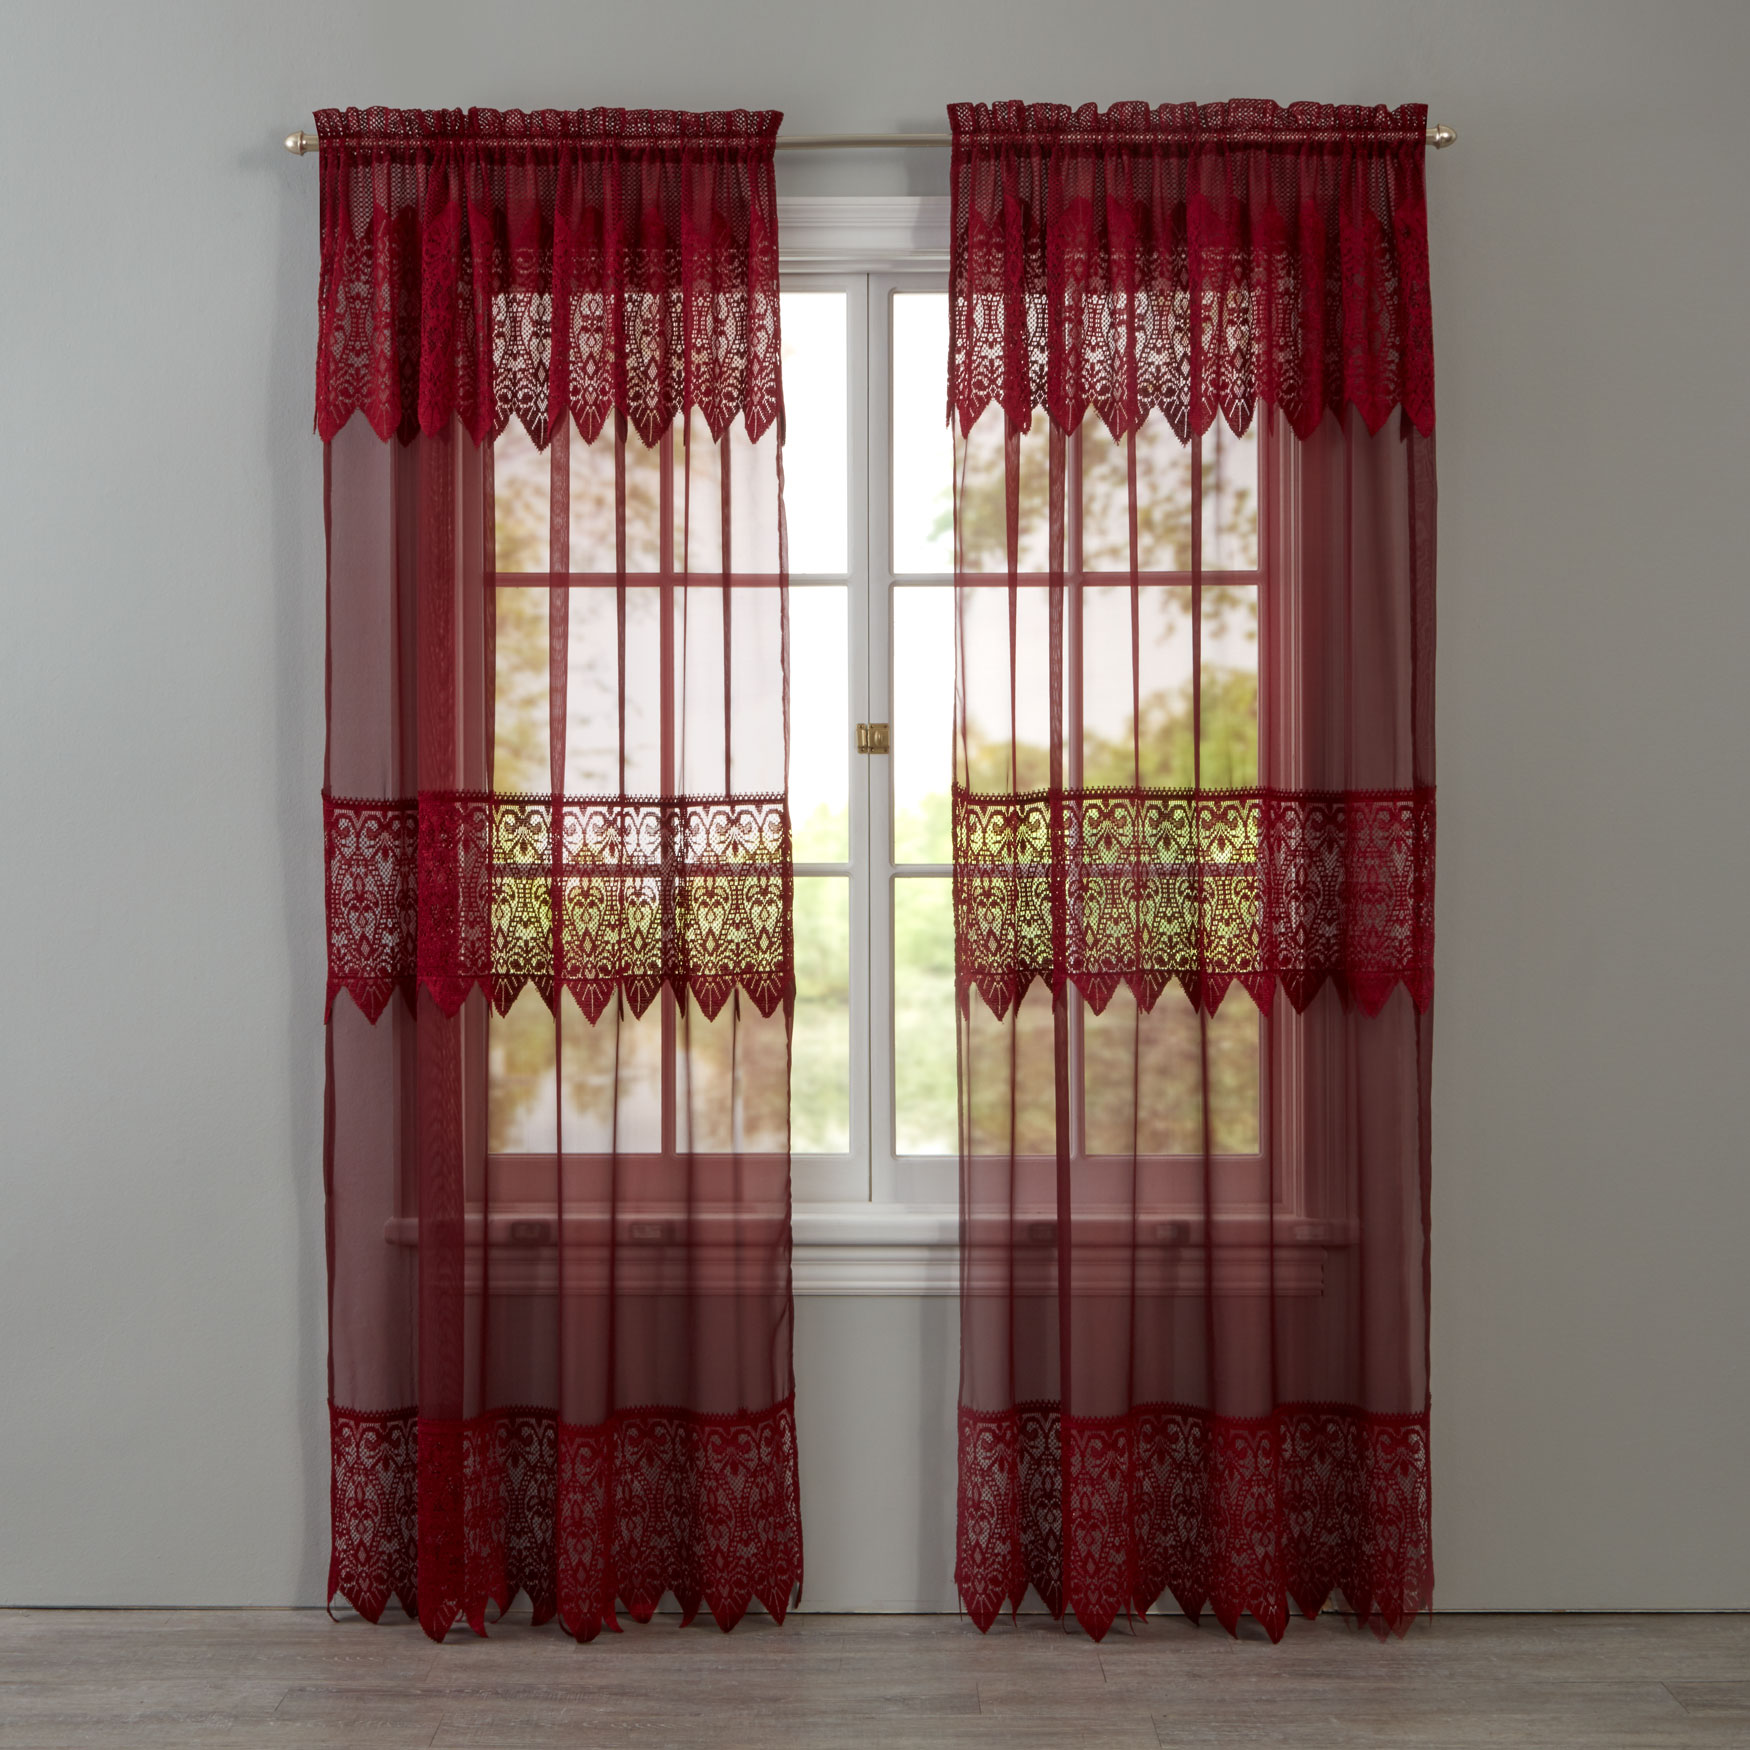 Valerie Sheer Lace Rod-Pocket Panel with Attached Valance,